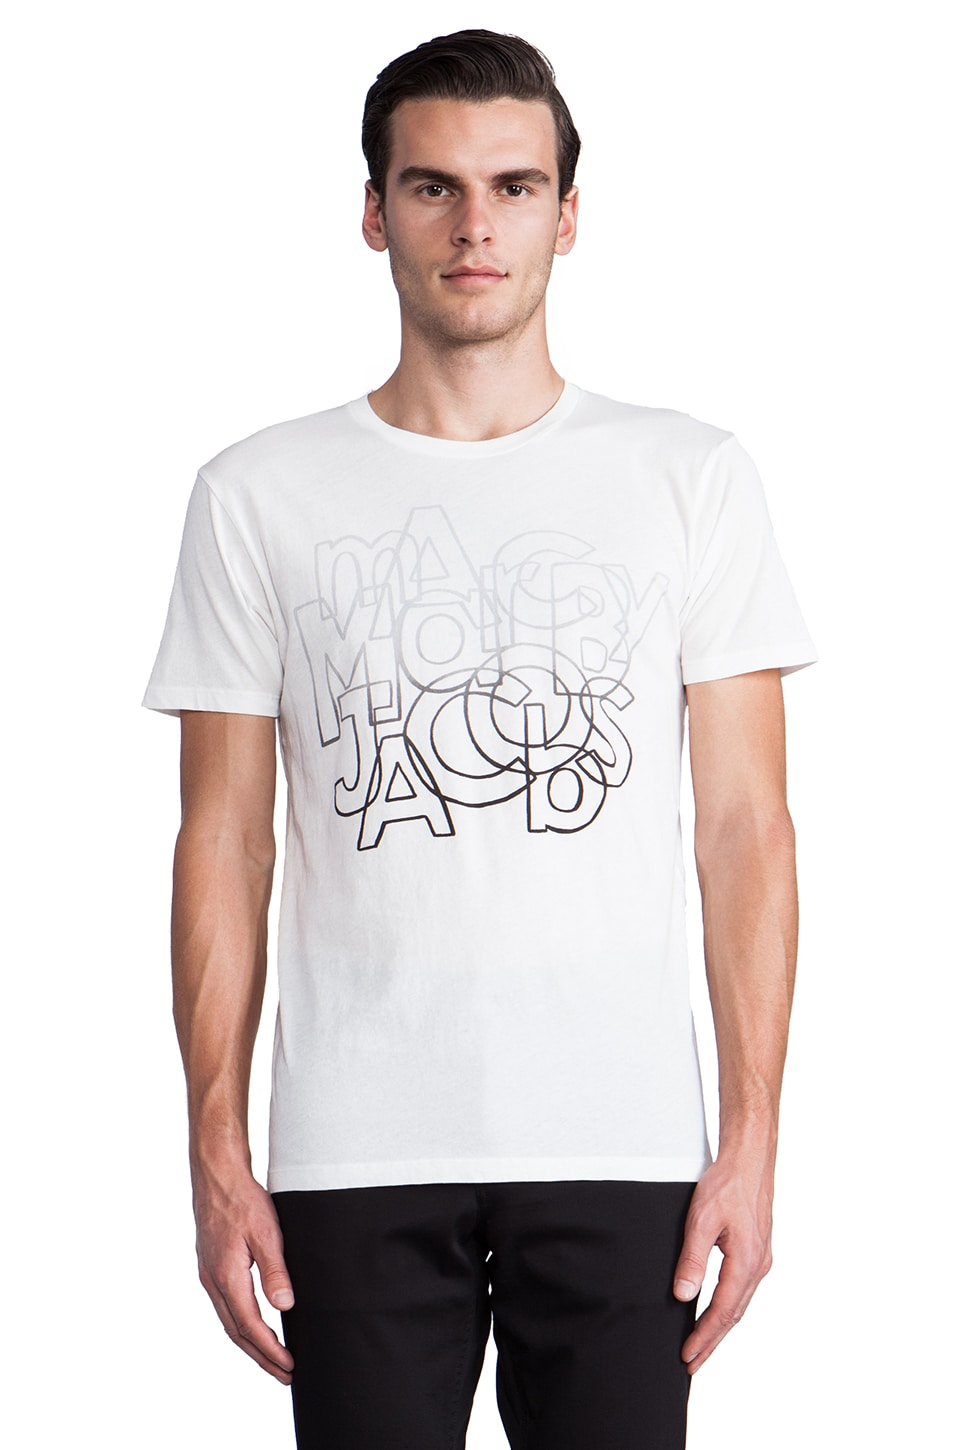 Marc by Marc Jacobs Faded Font Tee in White Multi